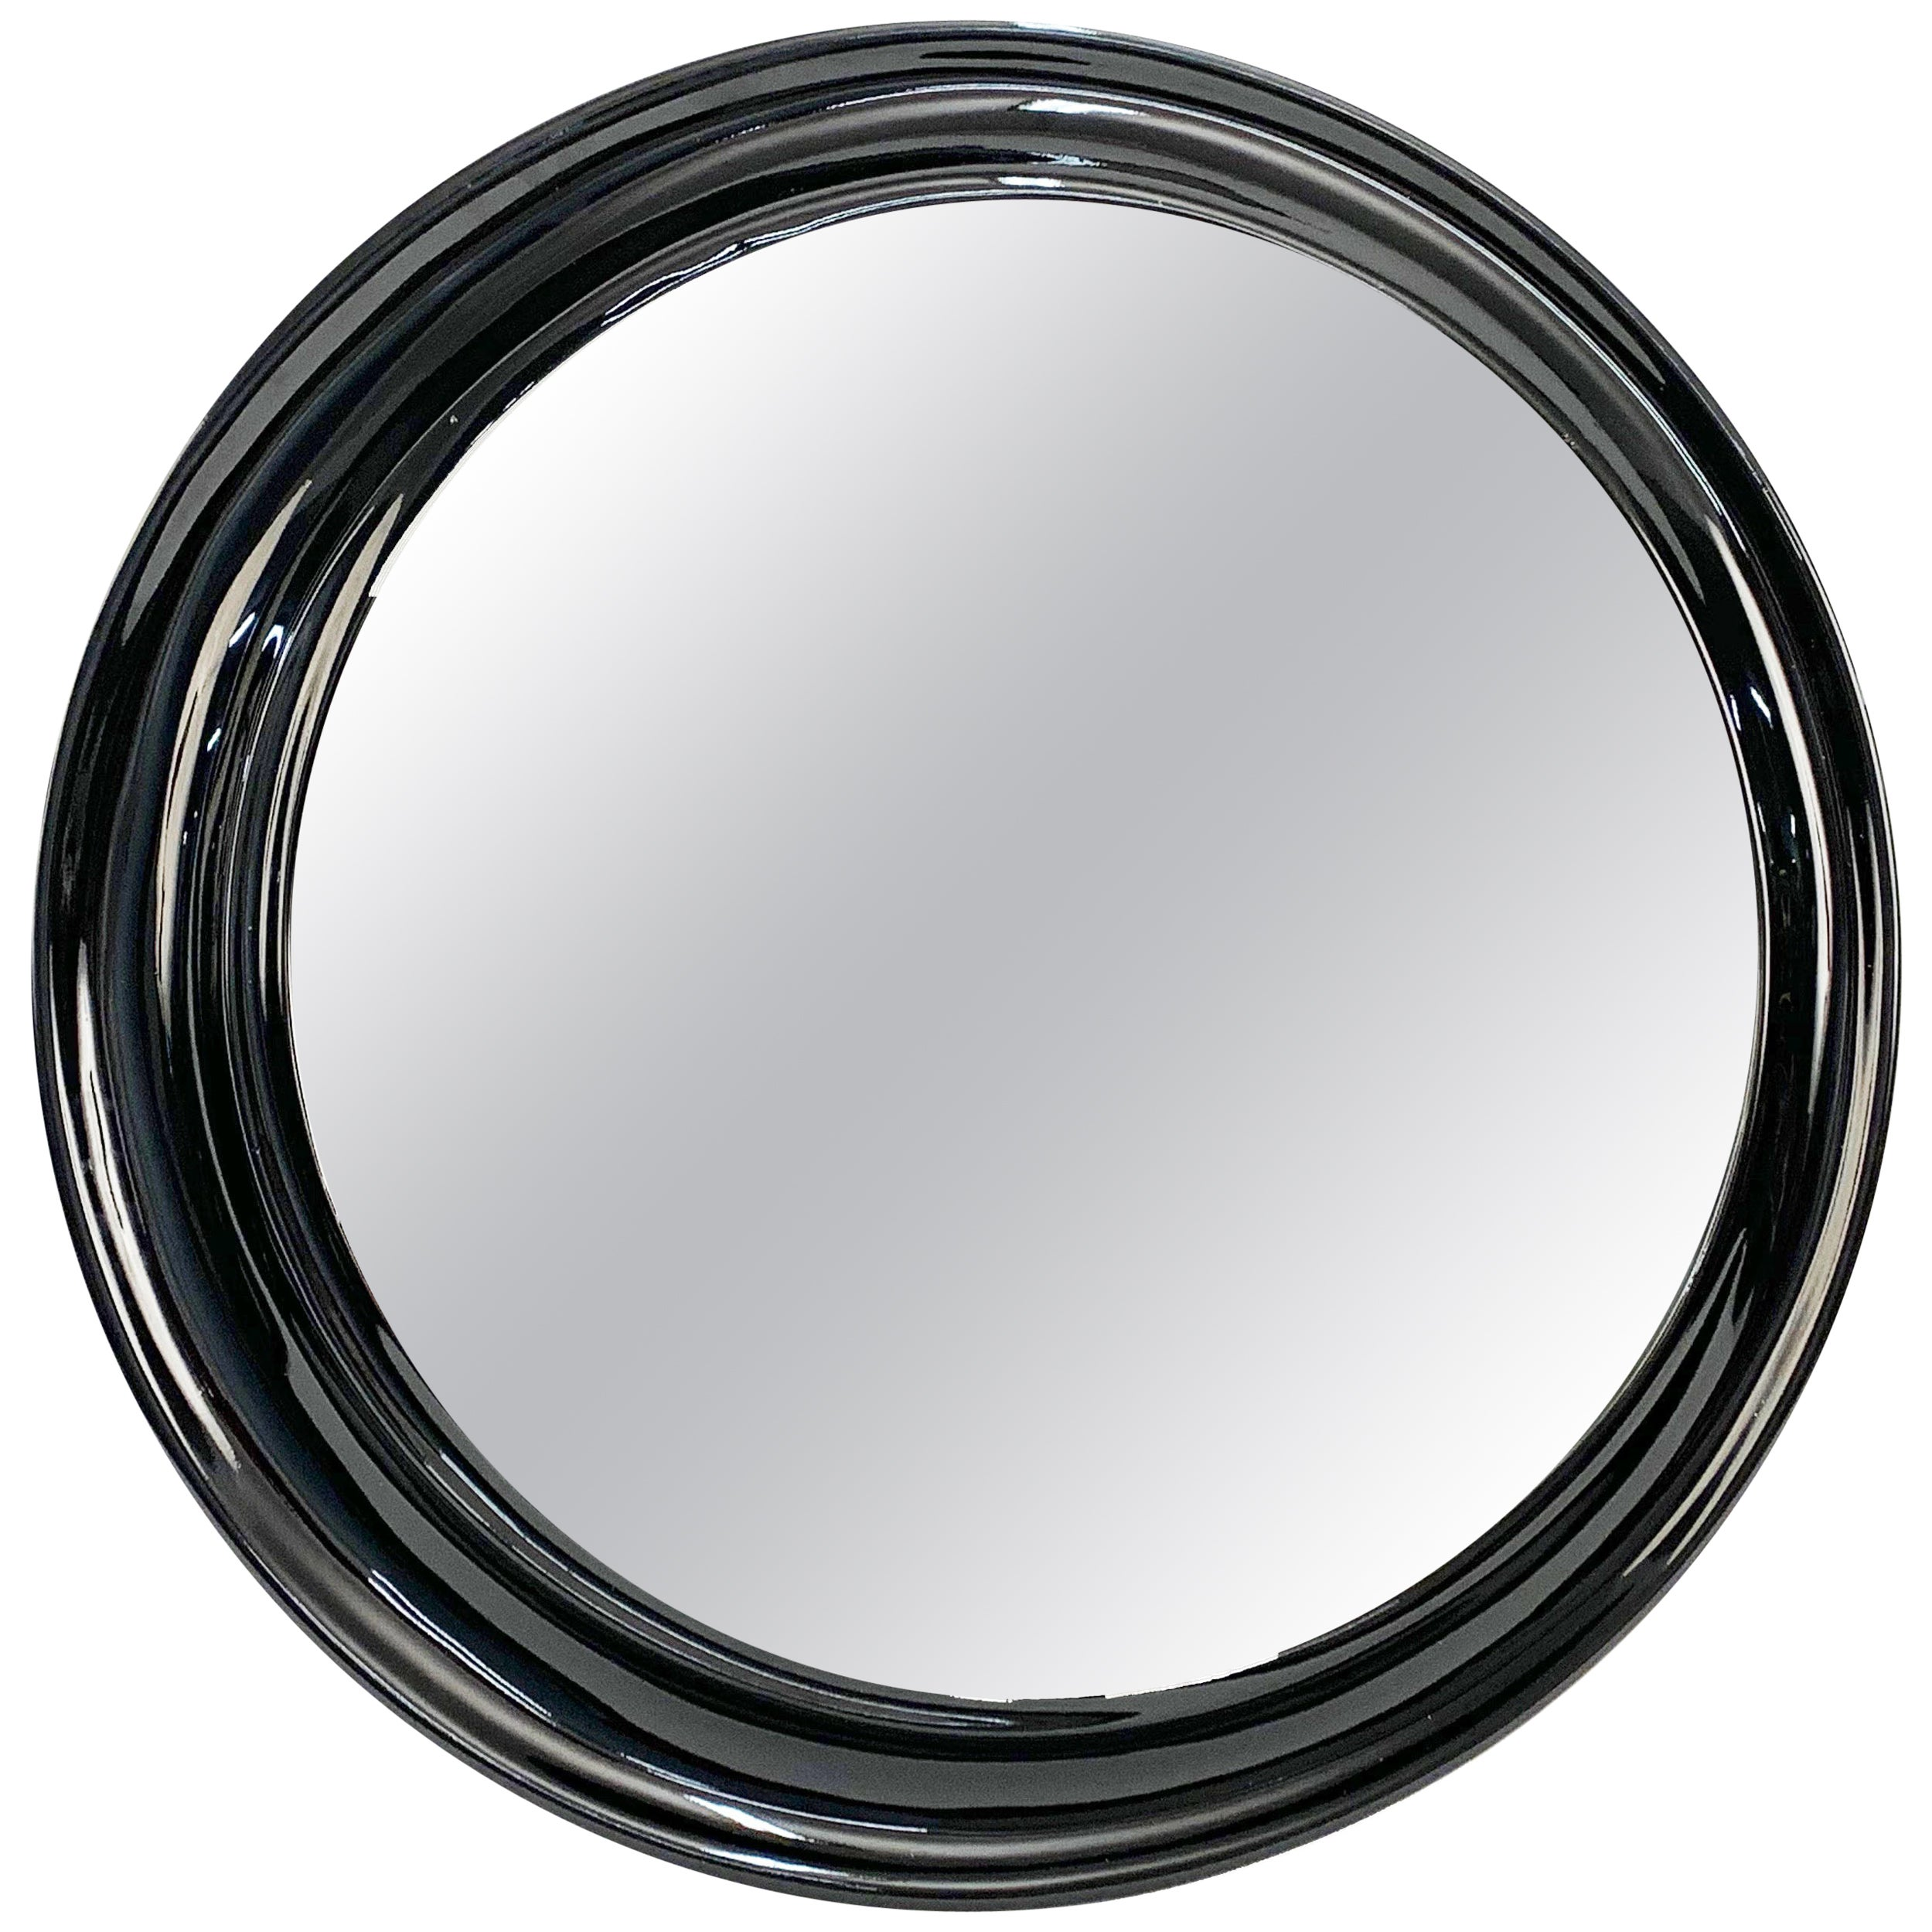 Midcentury Round Italian Mirror with Black Lacquered Resin Frame, 1970s